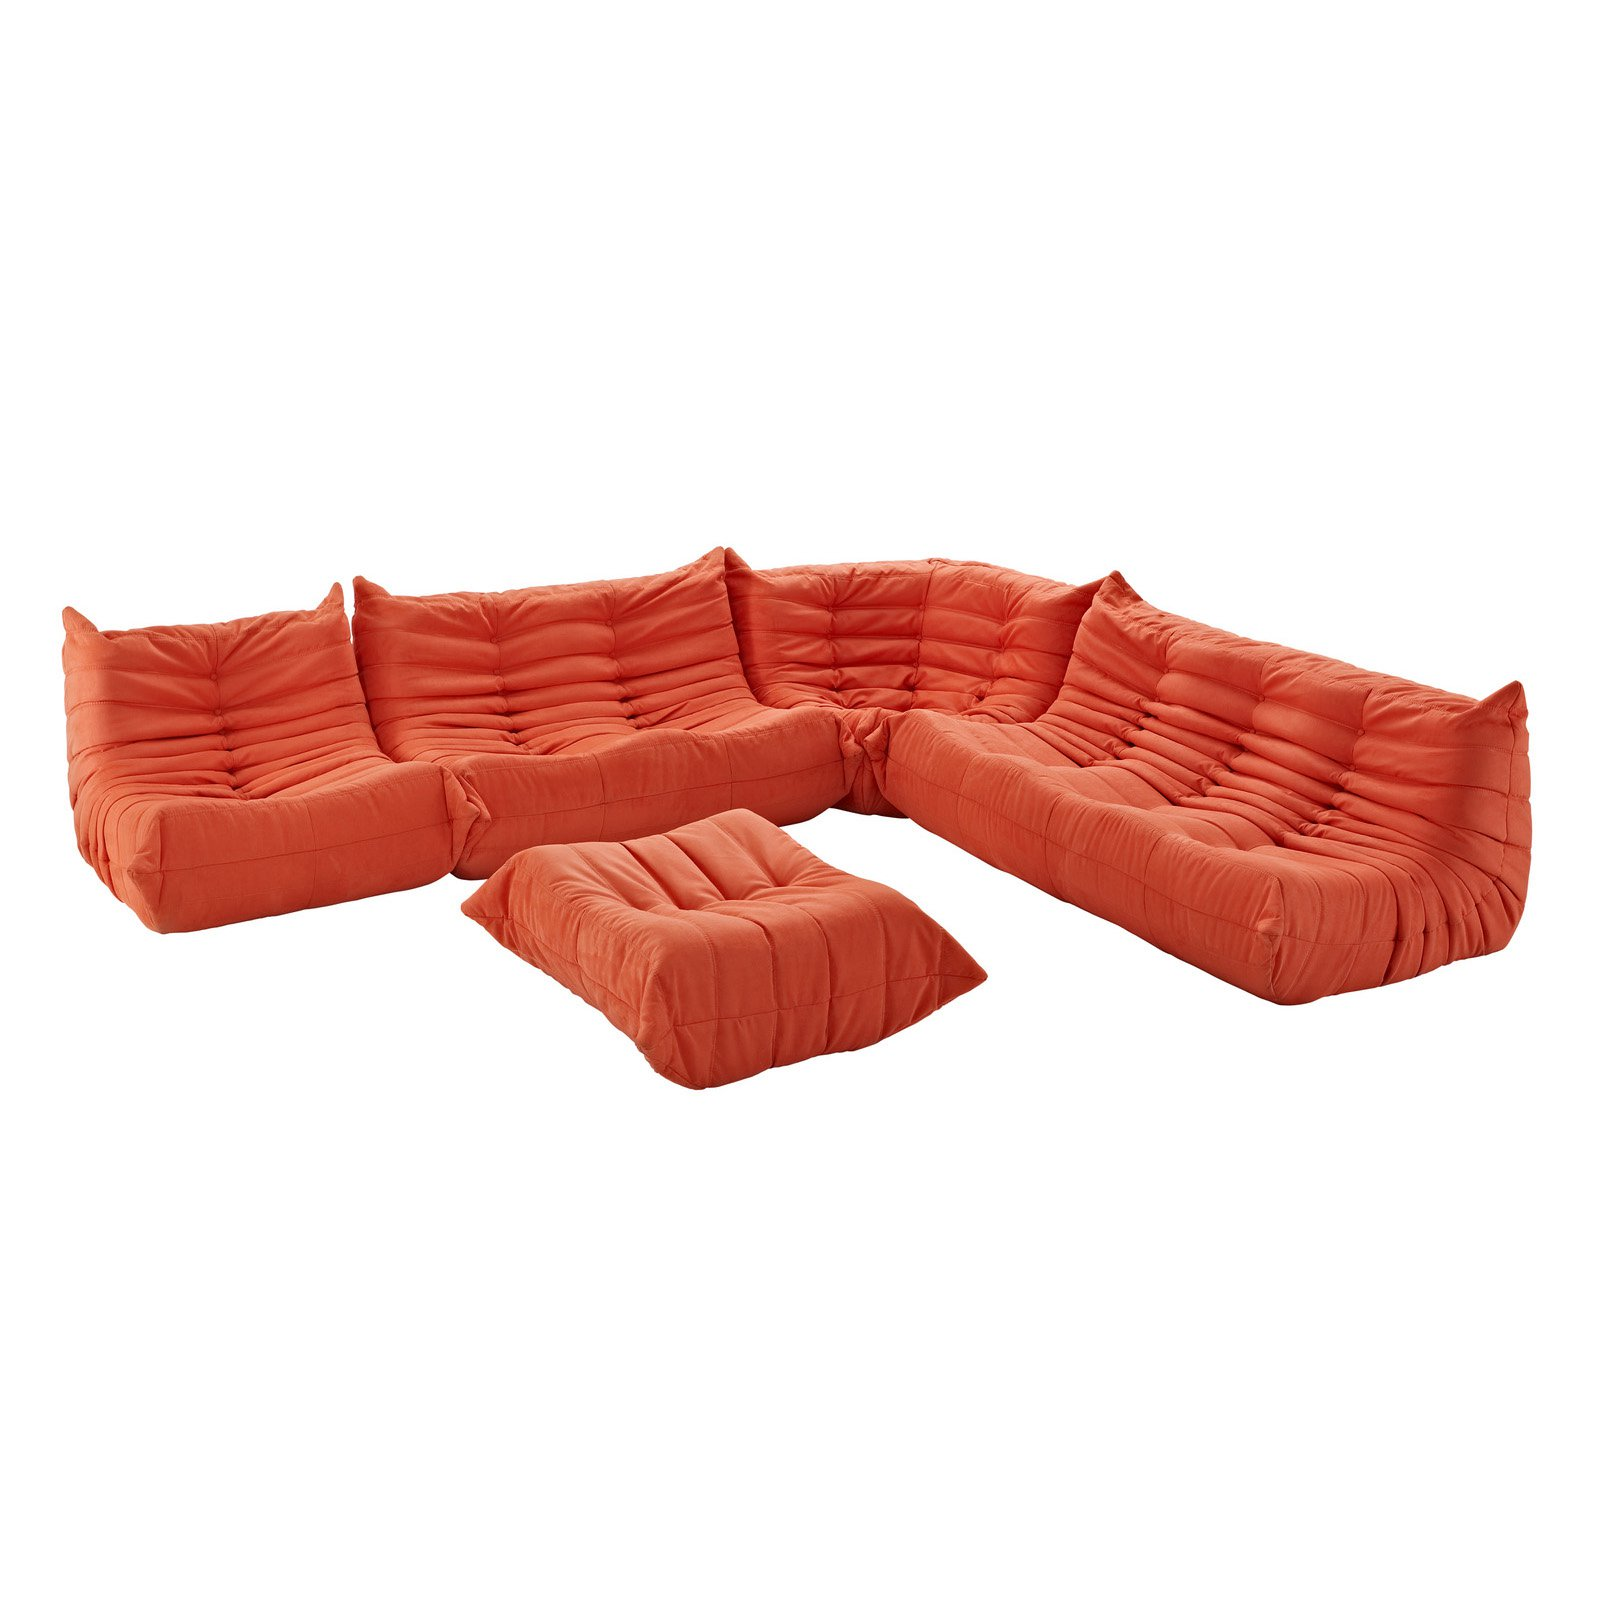 Modway Furniture Waverunner Sofa Set, Black - EEI-558-BLK